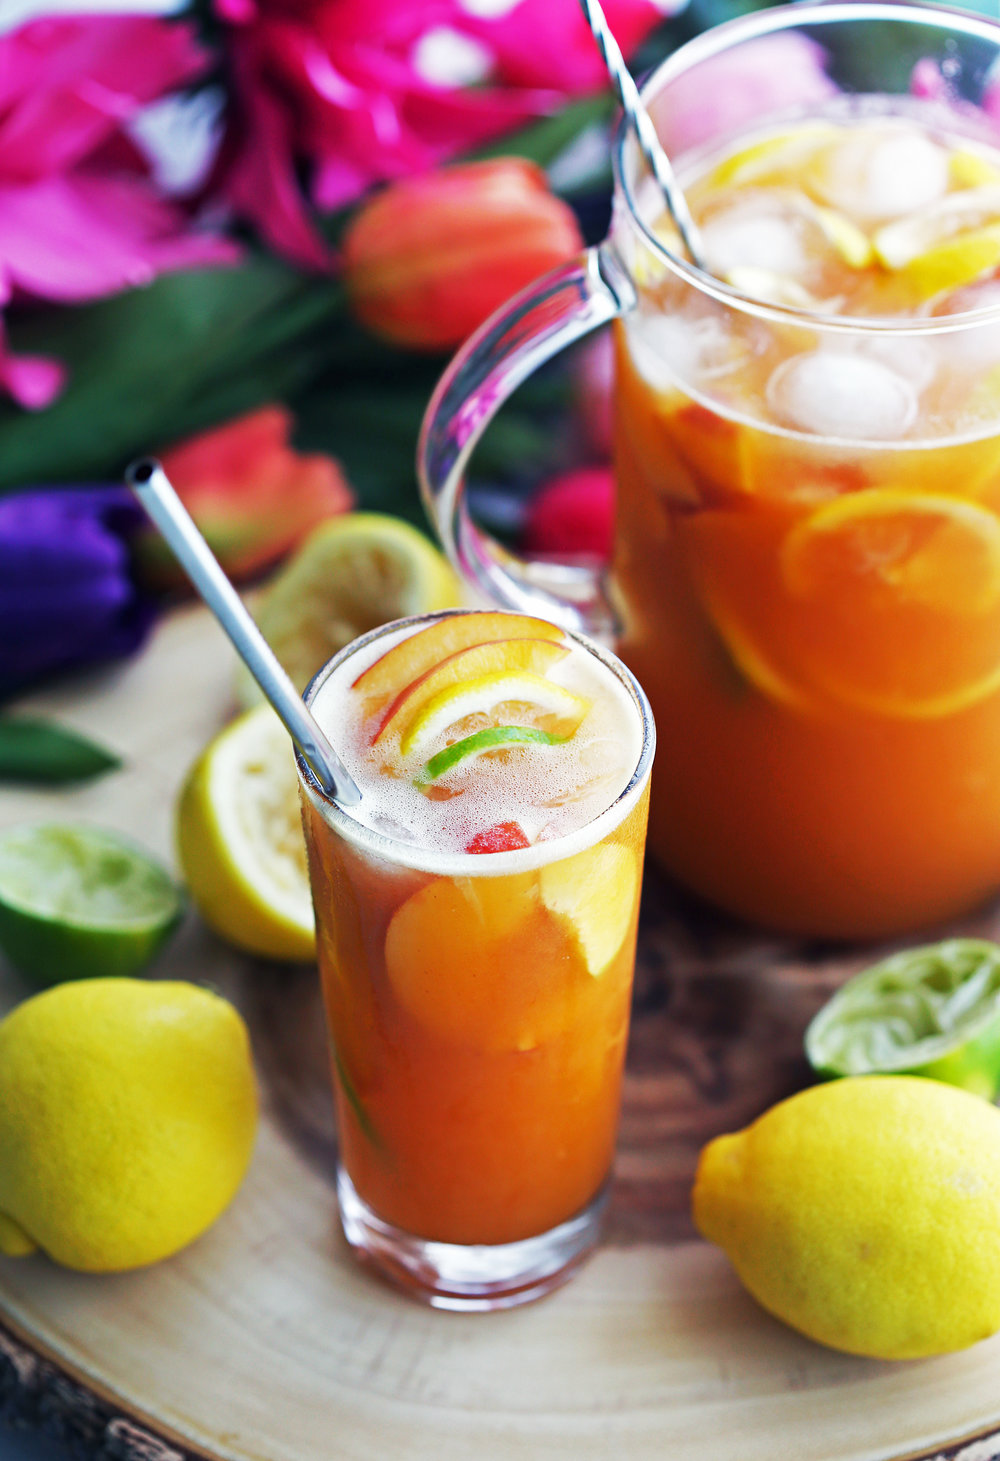 A drinking glass and glass container full of maple peach citrus juice with fruit slices and ice.